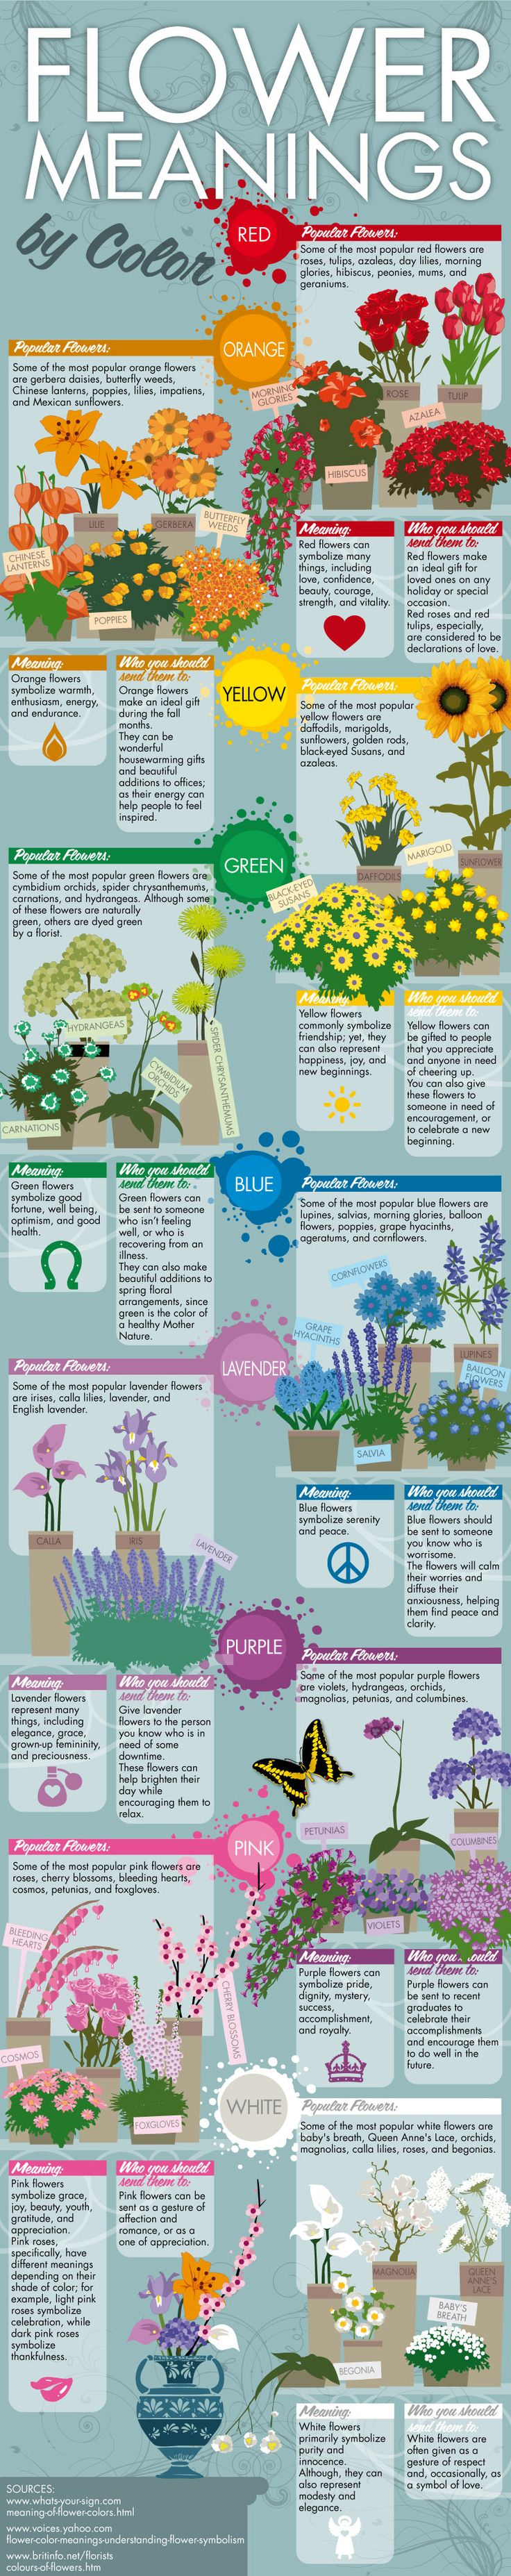 Interesting and informative infographic all about the meanings behind the different colors of flowers.